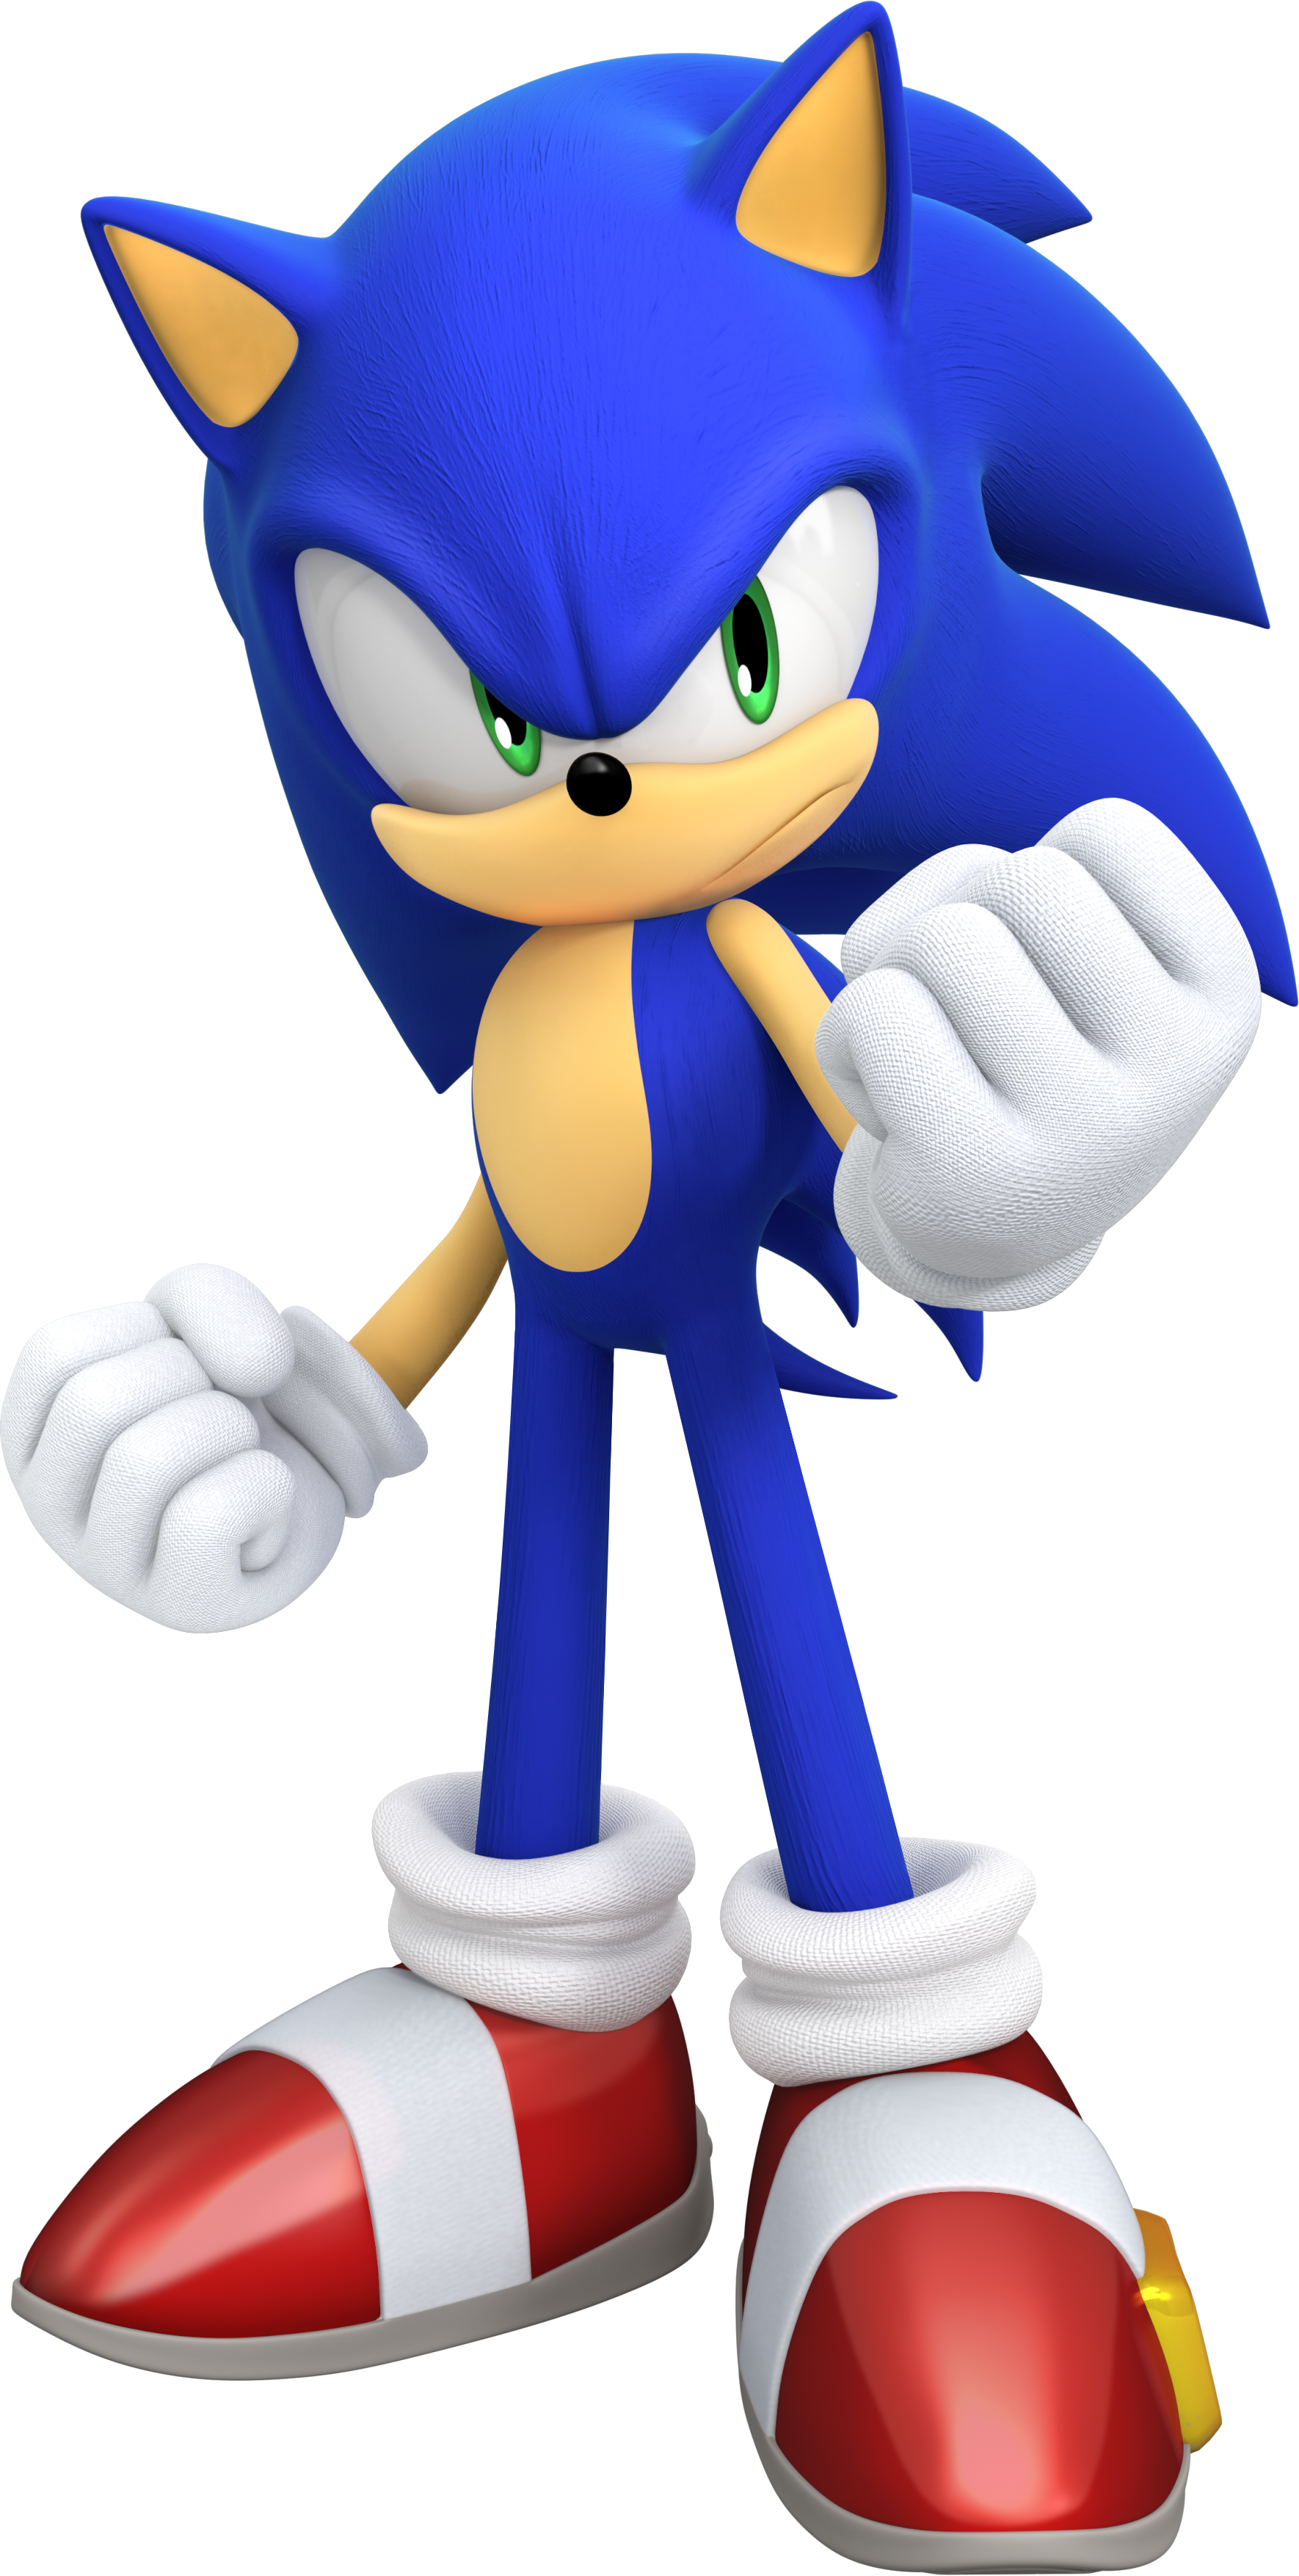 sonic hedgehog character wiki pop culture ultimate